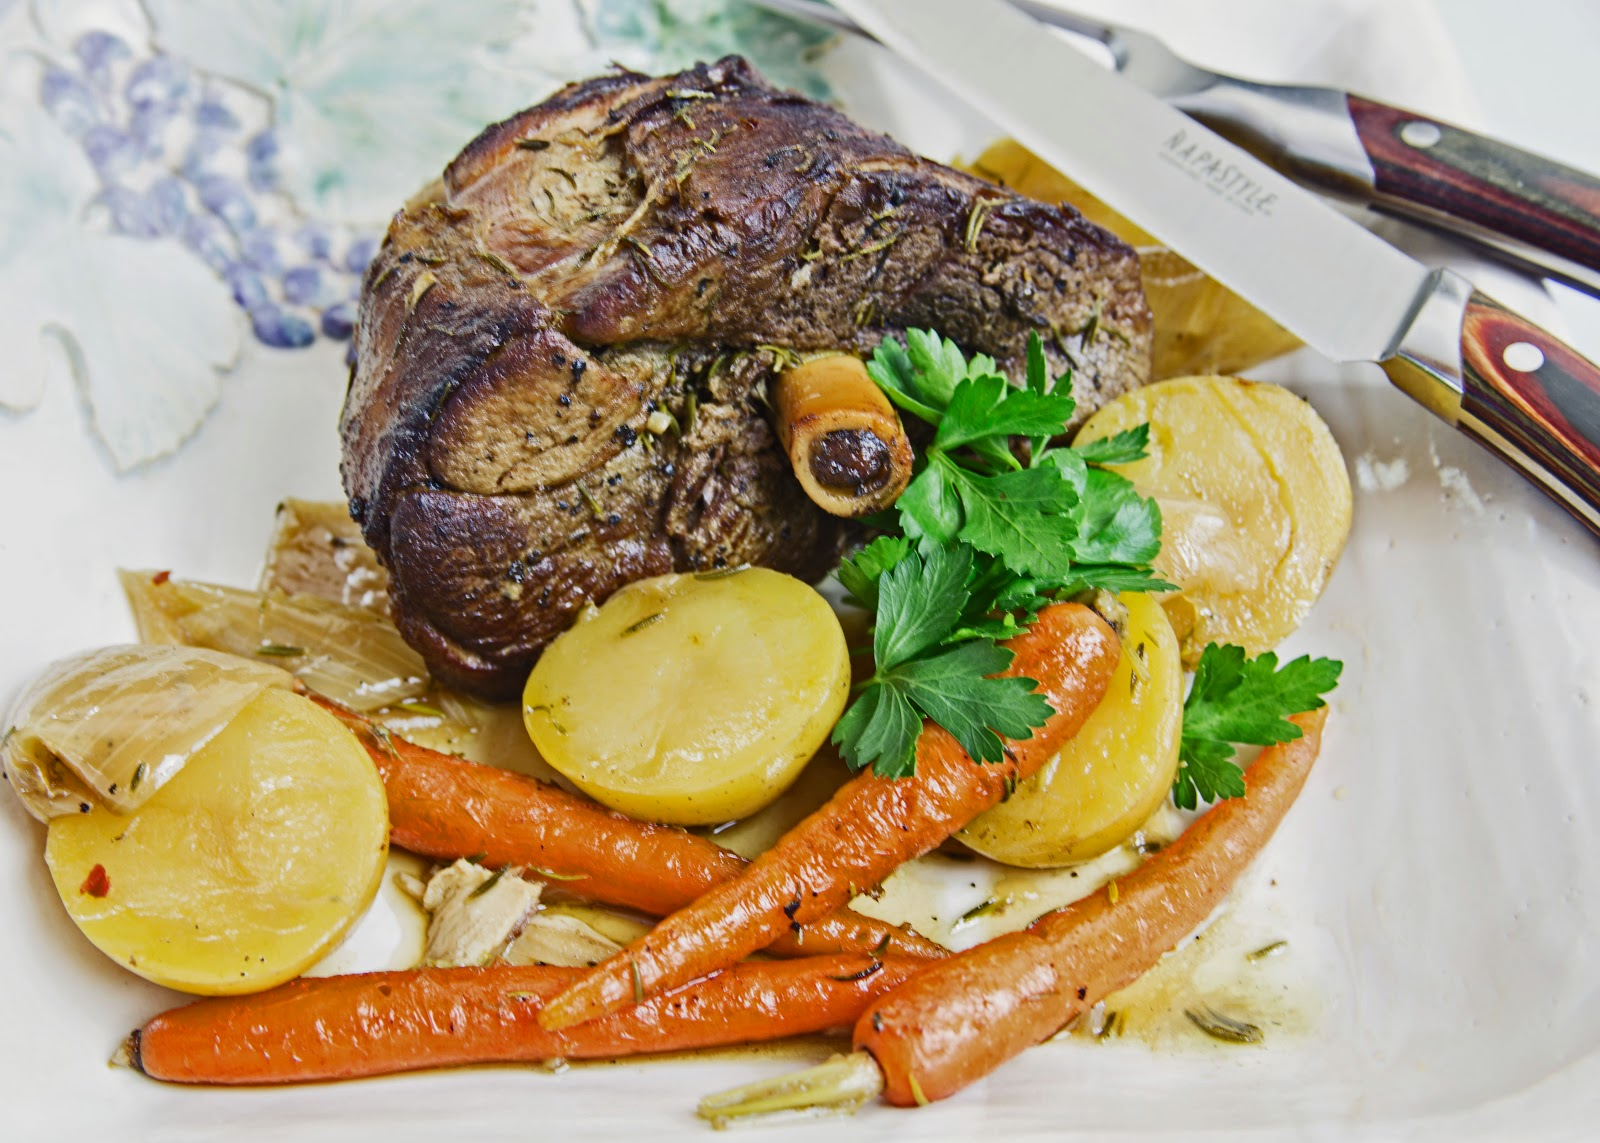 Tom and Anita : Rosemary Braised Leg of Lamb